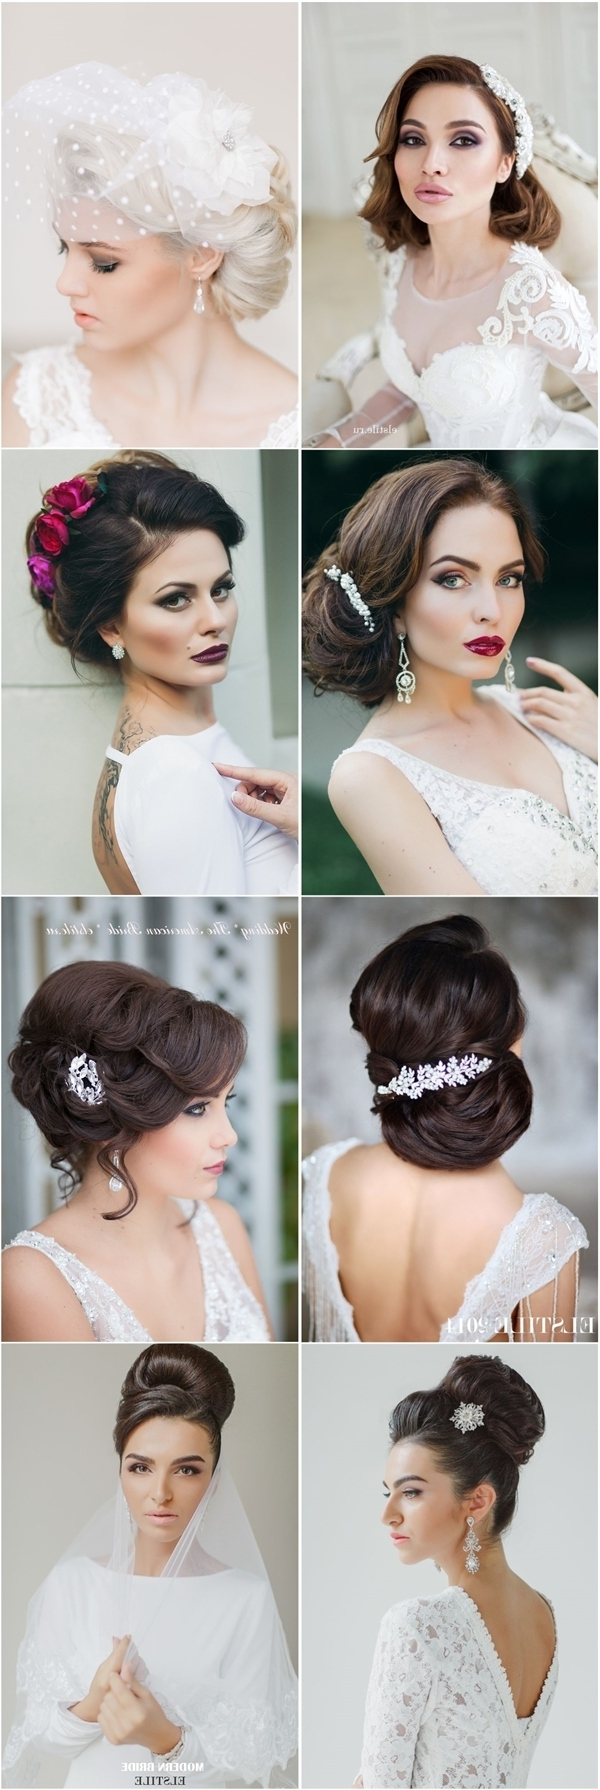 21 Inspirational Vintage Retro Wedding Hairstyles (View 1 of 15)